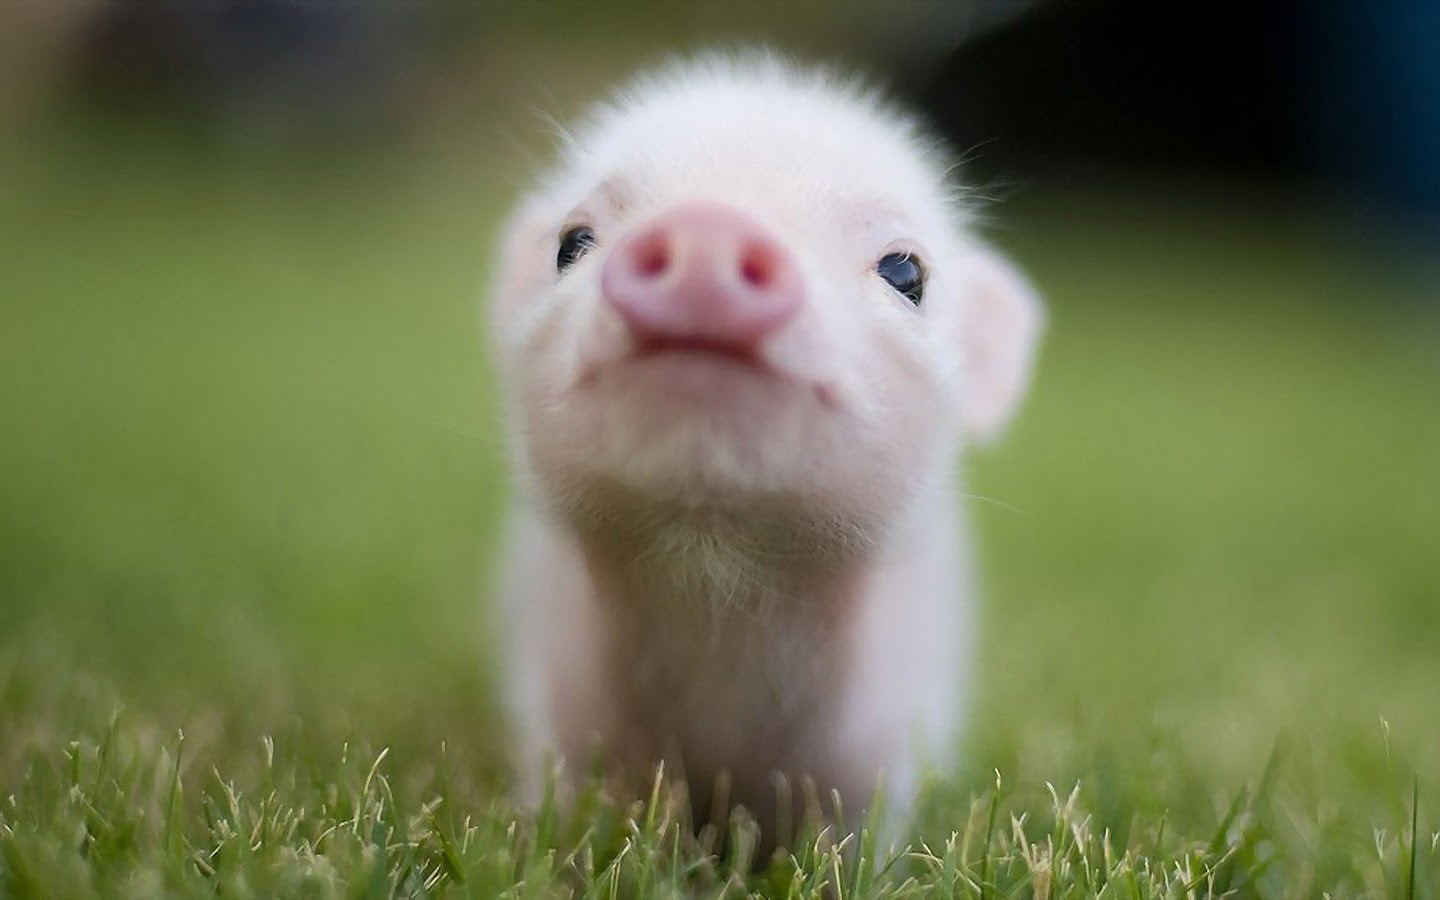 Free download Cute Baby Pigs 11278 Hd Wallpapers in ...